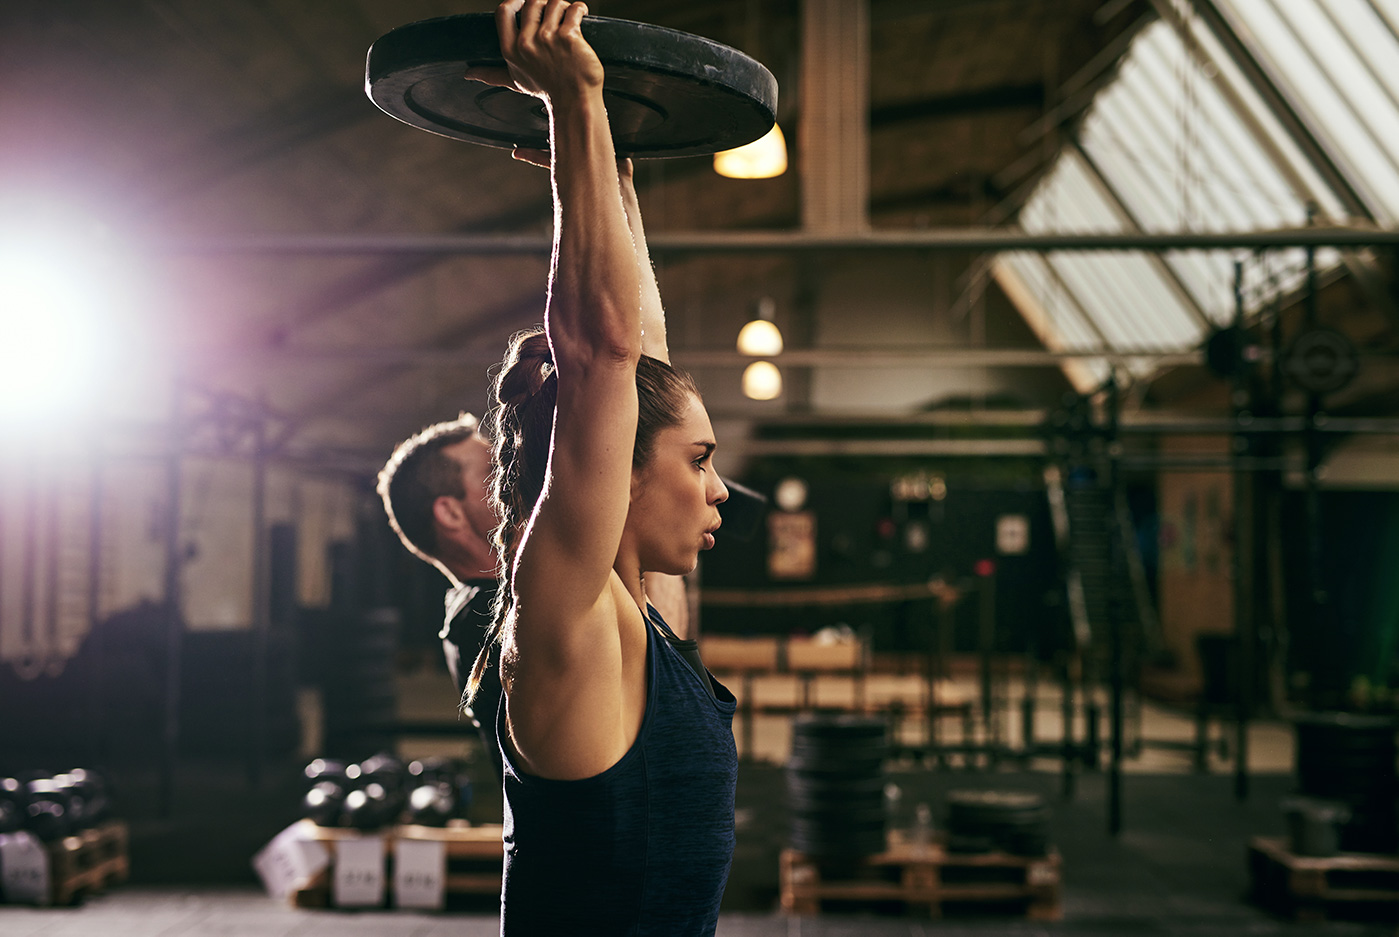 What are the components of an effective weight training program?